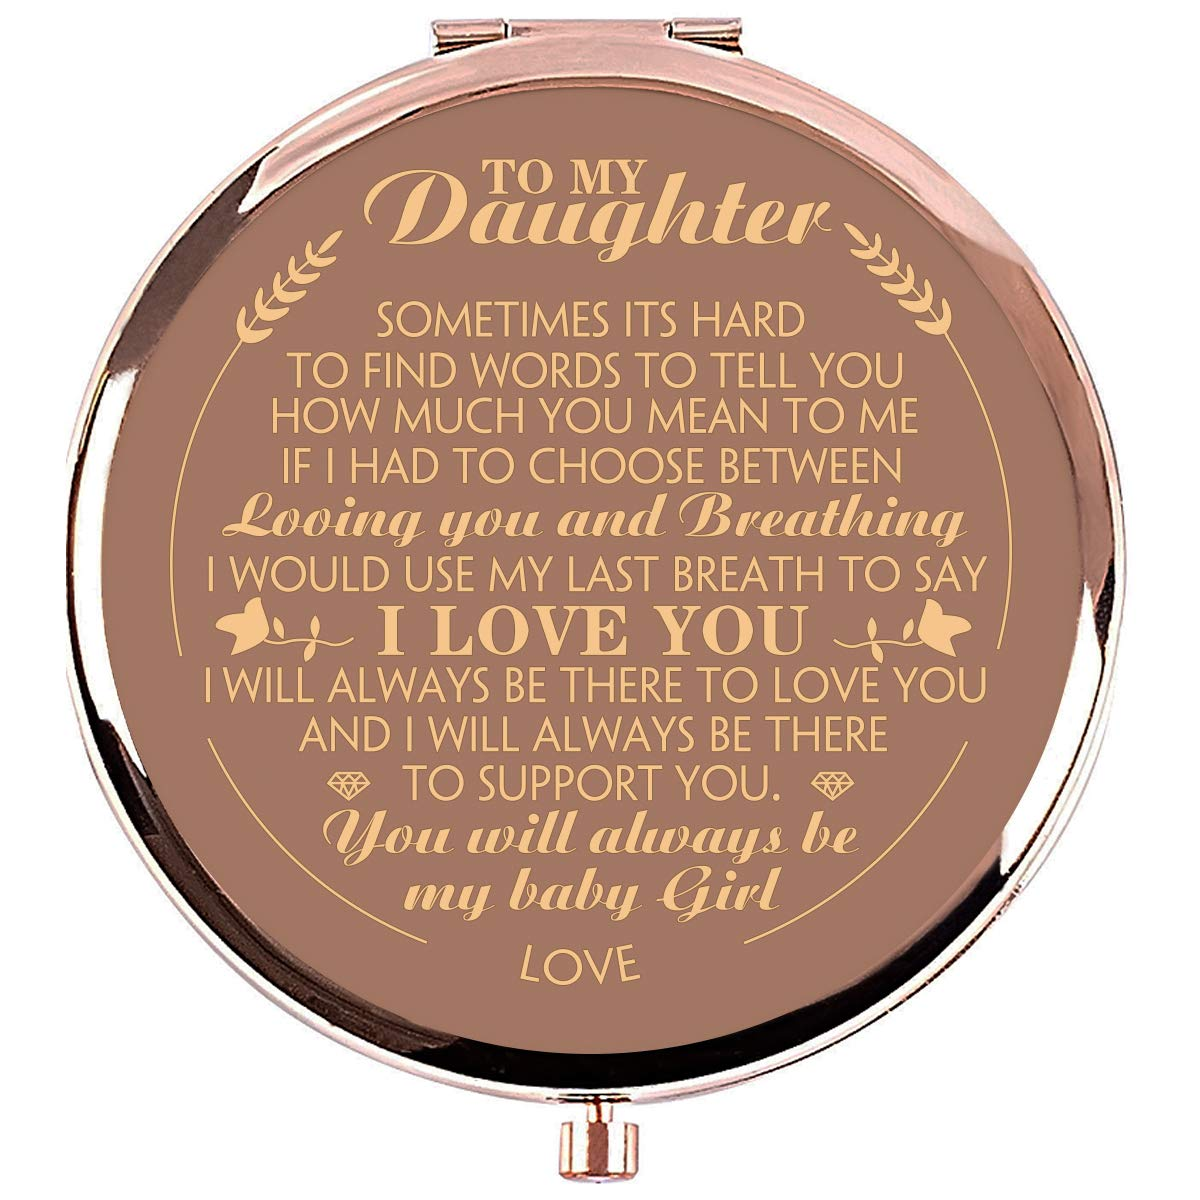 Ueerdand Daughter Gifts from Mom and Dad, Unique Birthday Gift Ideas for  Daughter, Graduation Gifts for Her, Present for Women Girls, Rose Gold  Purse